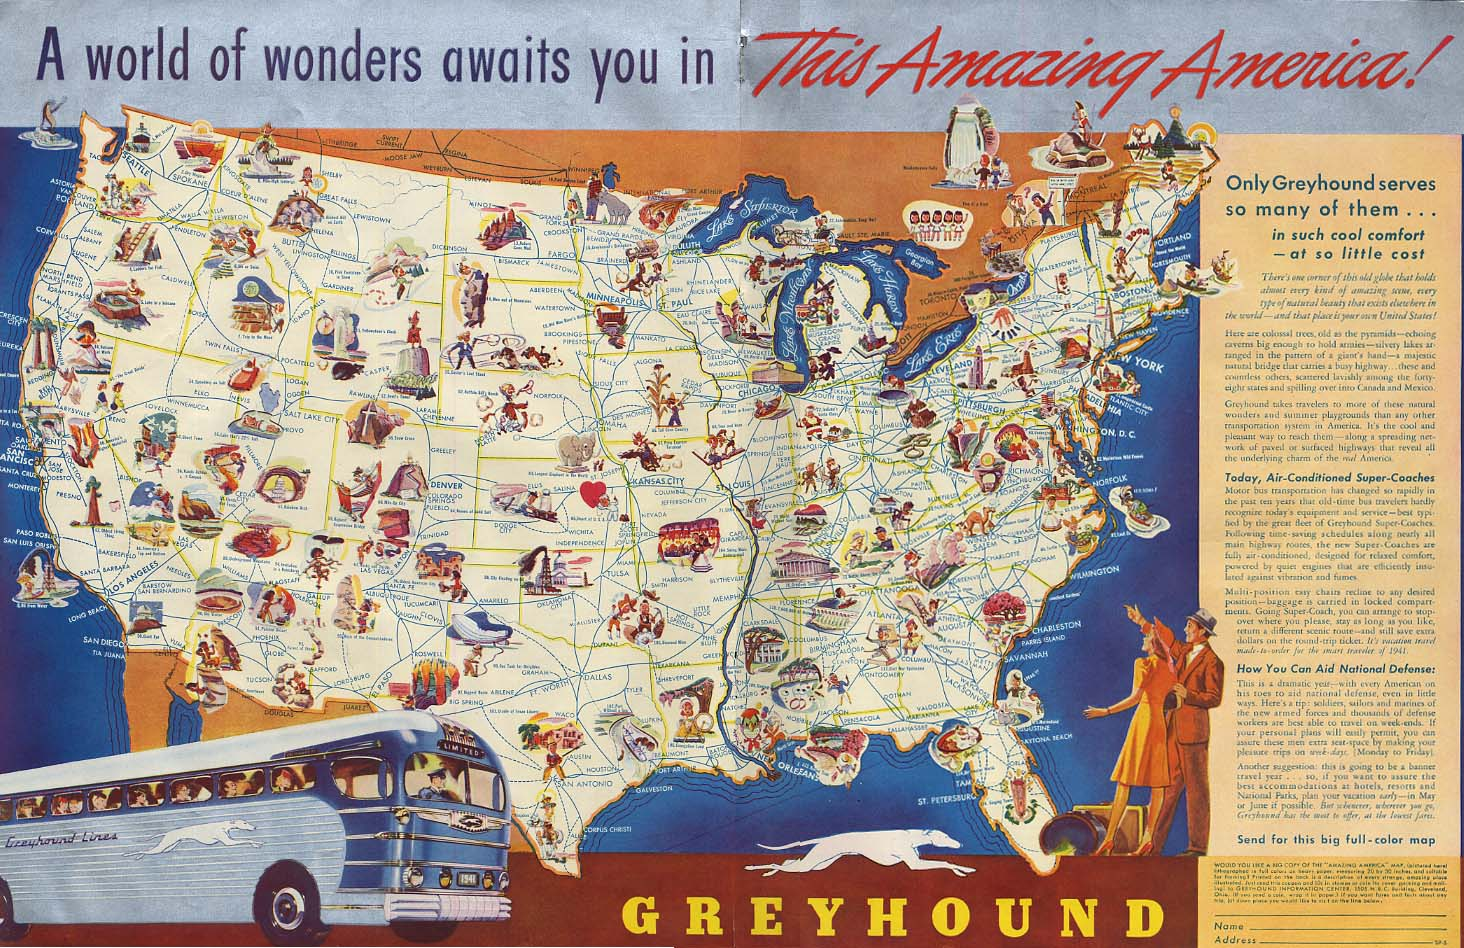 A World of Wonders awaits you in this Amazing America Greyhound Bus ad 1941 SEP